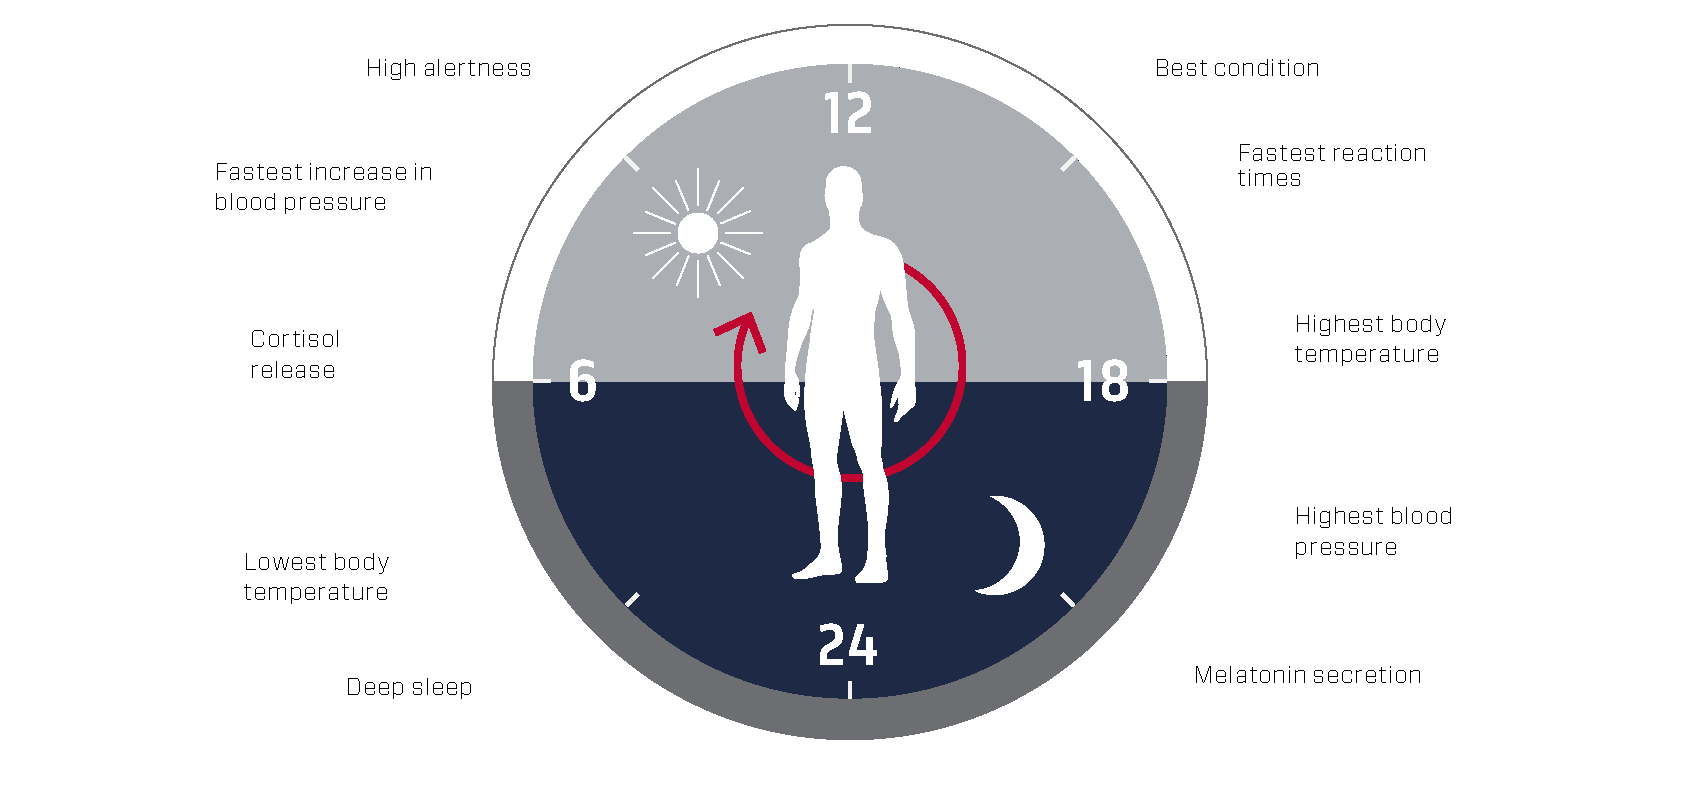 The circadaia clock. Credit: Mattias Karlen, The Nobel Committee for Physiology or Medicine